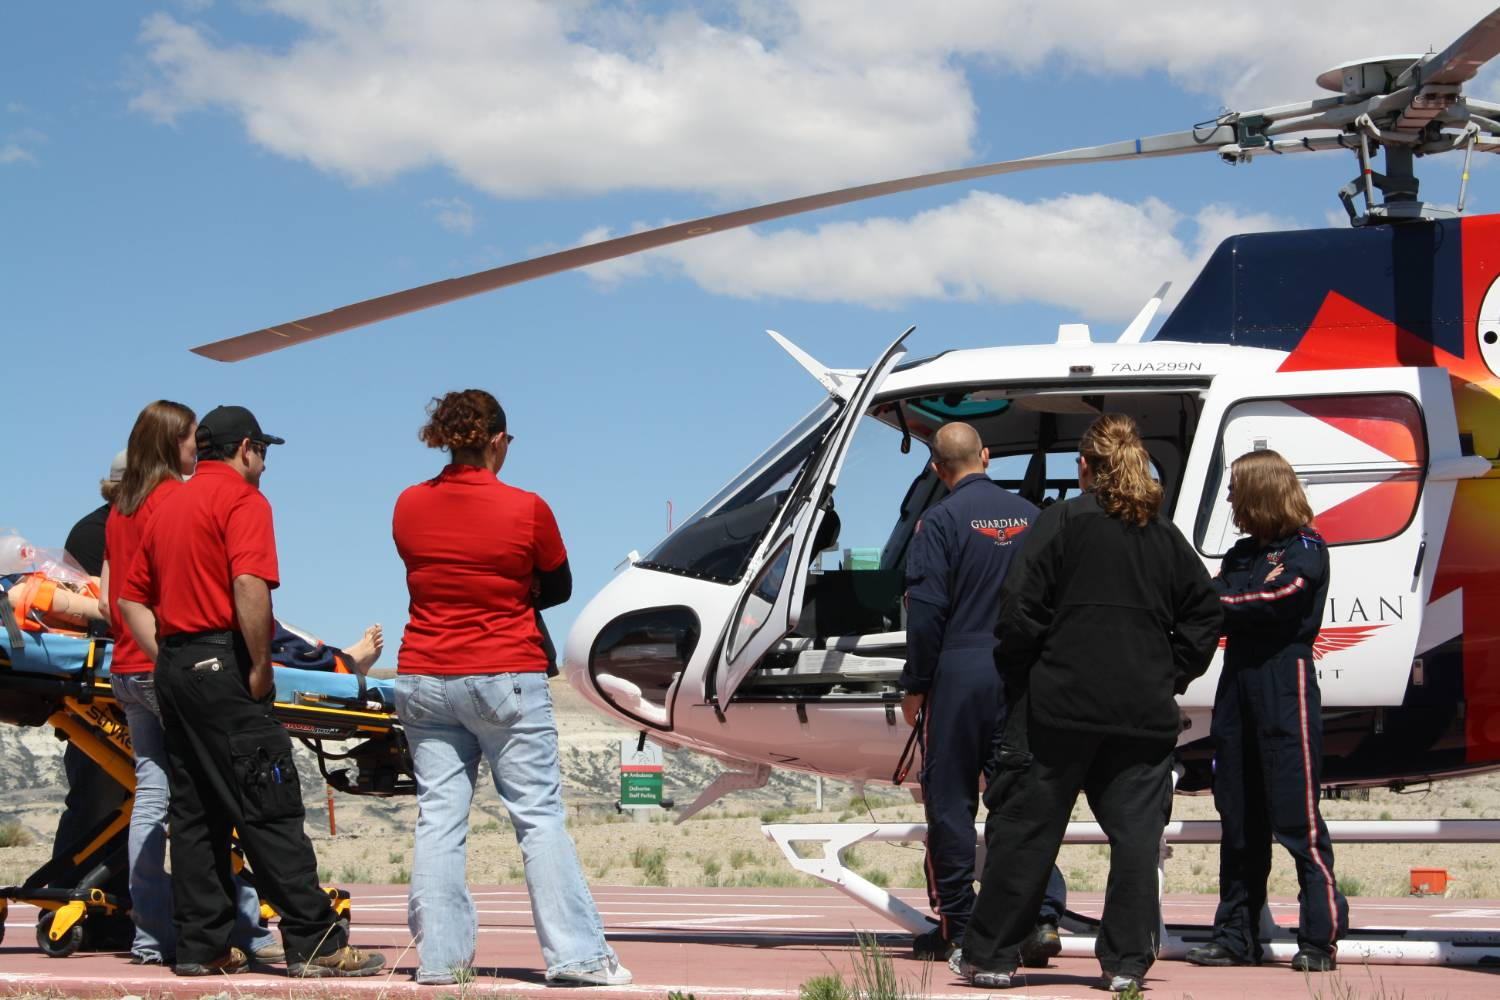 This is a picture of EMT students learning to load a patient into a helicopter